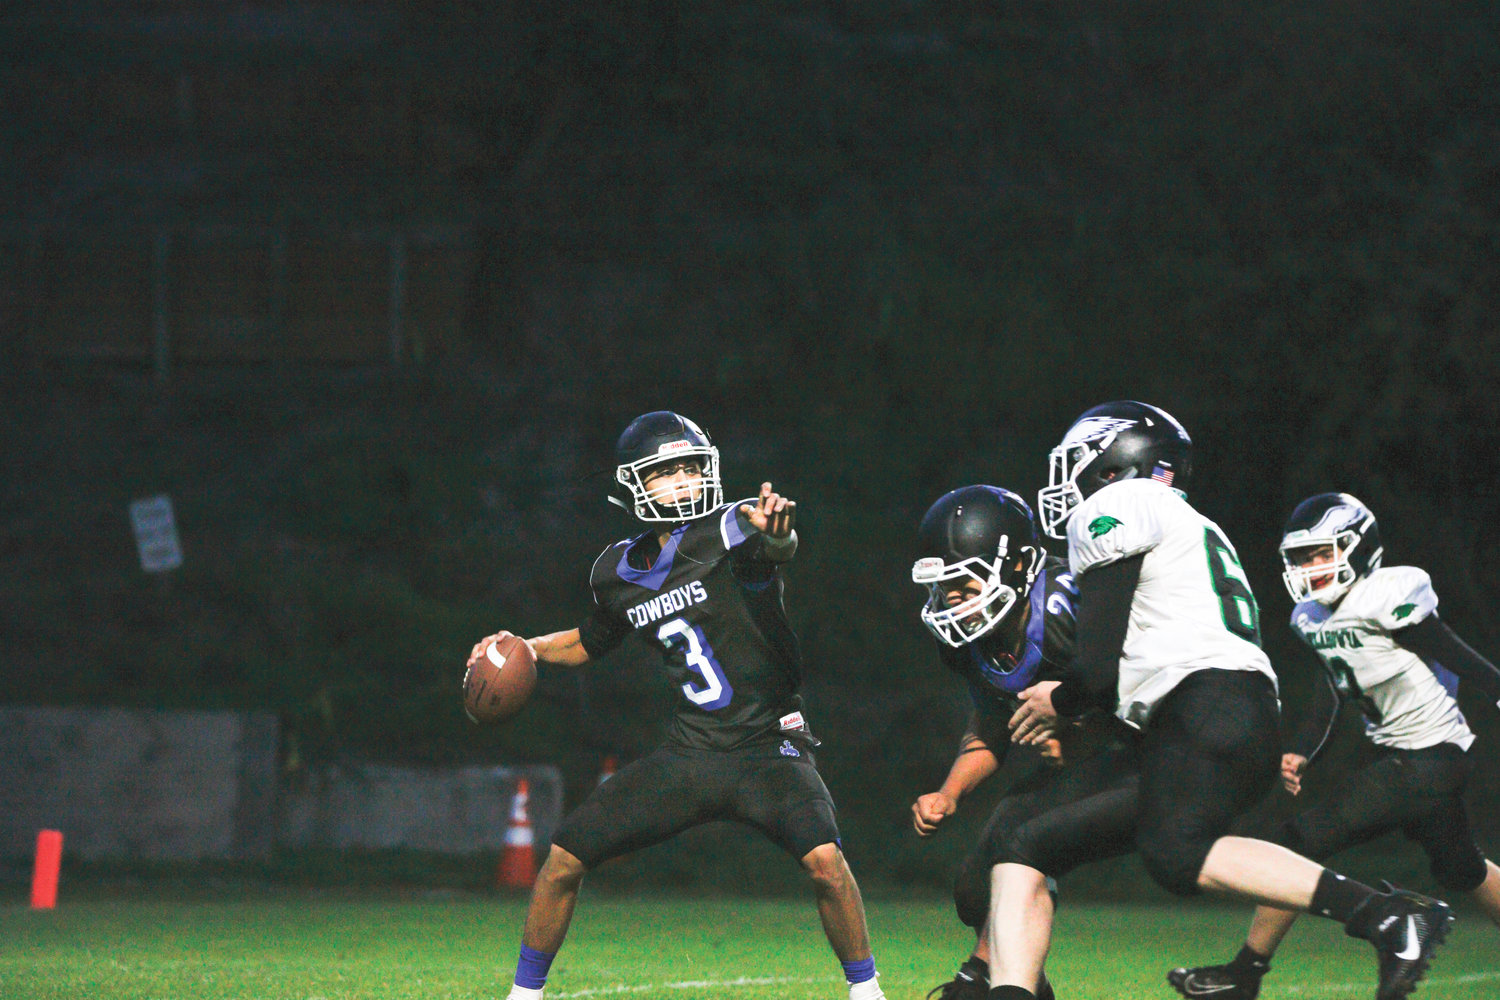 Making his homefield debut as Chimacum quarterback, Henry Brebberman guides the Cowboys to victory over the Klahowya Eagles 22-16 on Sept. 27.